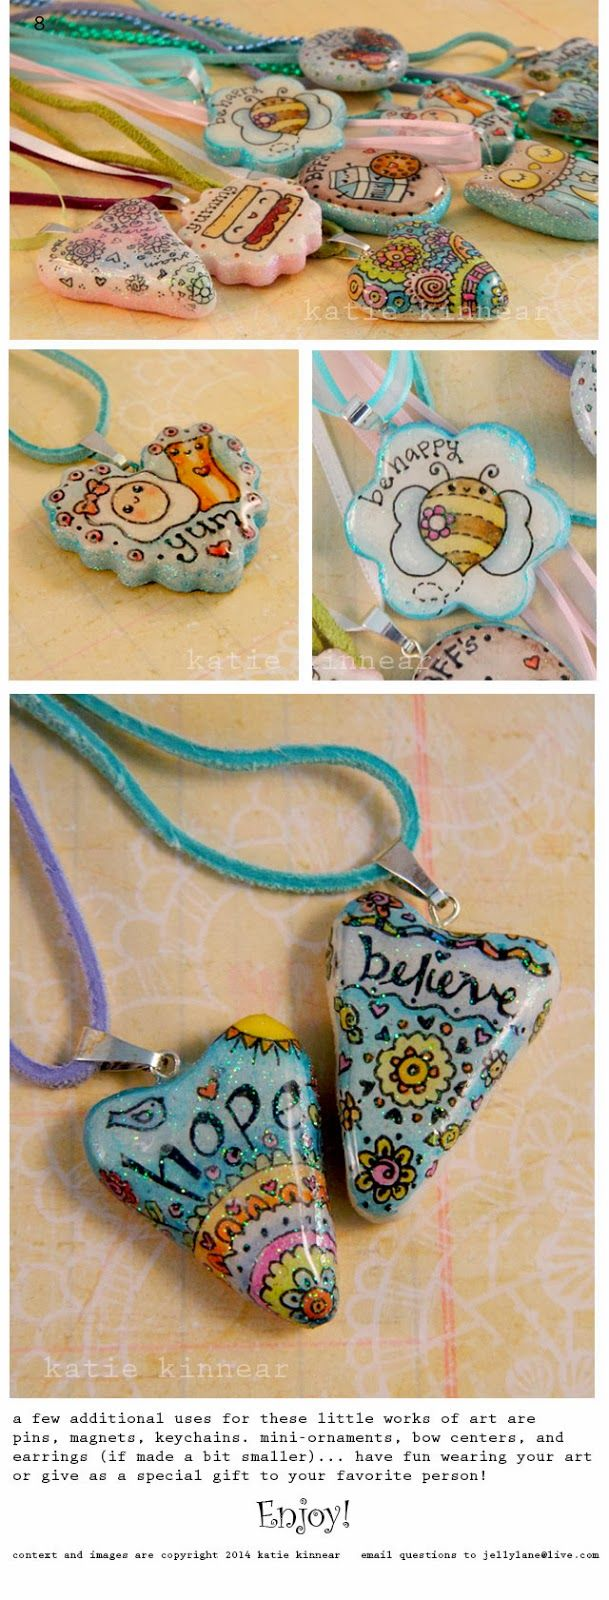 Doodled Pendants ~polymer clay, marker, glaze~ Try it just to think positive and get creative, never mind wearing it! Bag of positive stones...